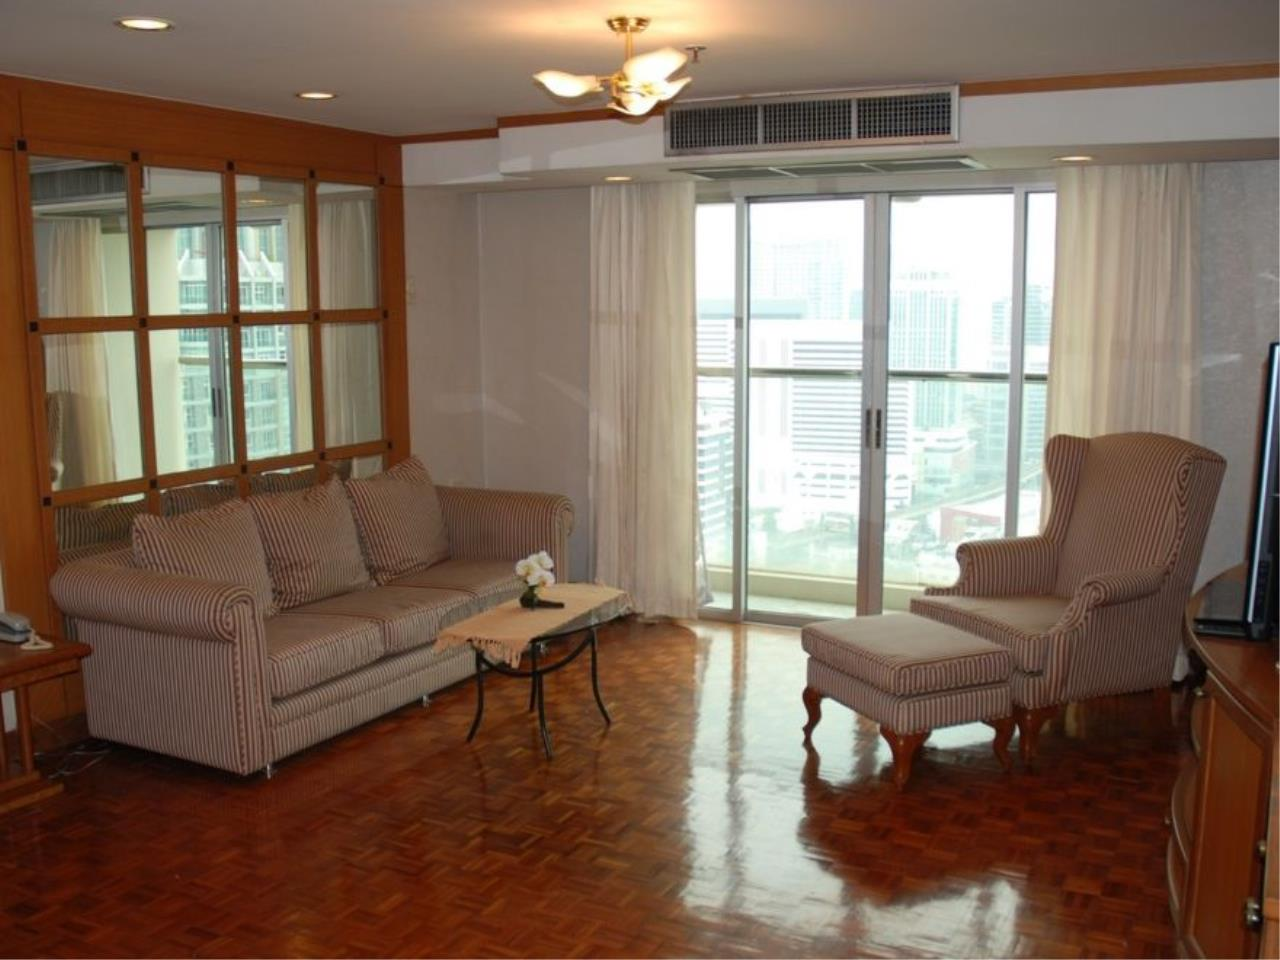 Siam Prop Agency's Shukhumvit Suits Condo for Rent / 1 Bed 1 Bath Shukhumvit Soi 13 / Good deal 19,900/month 3